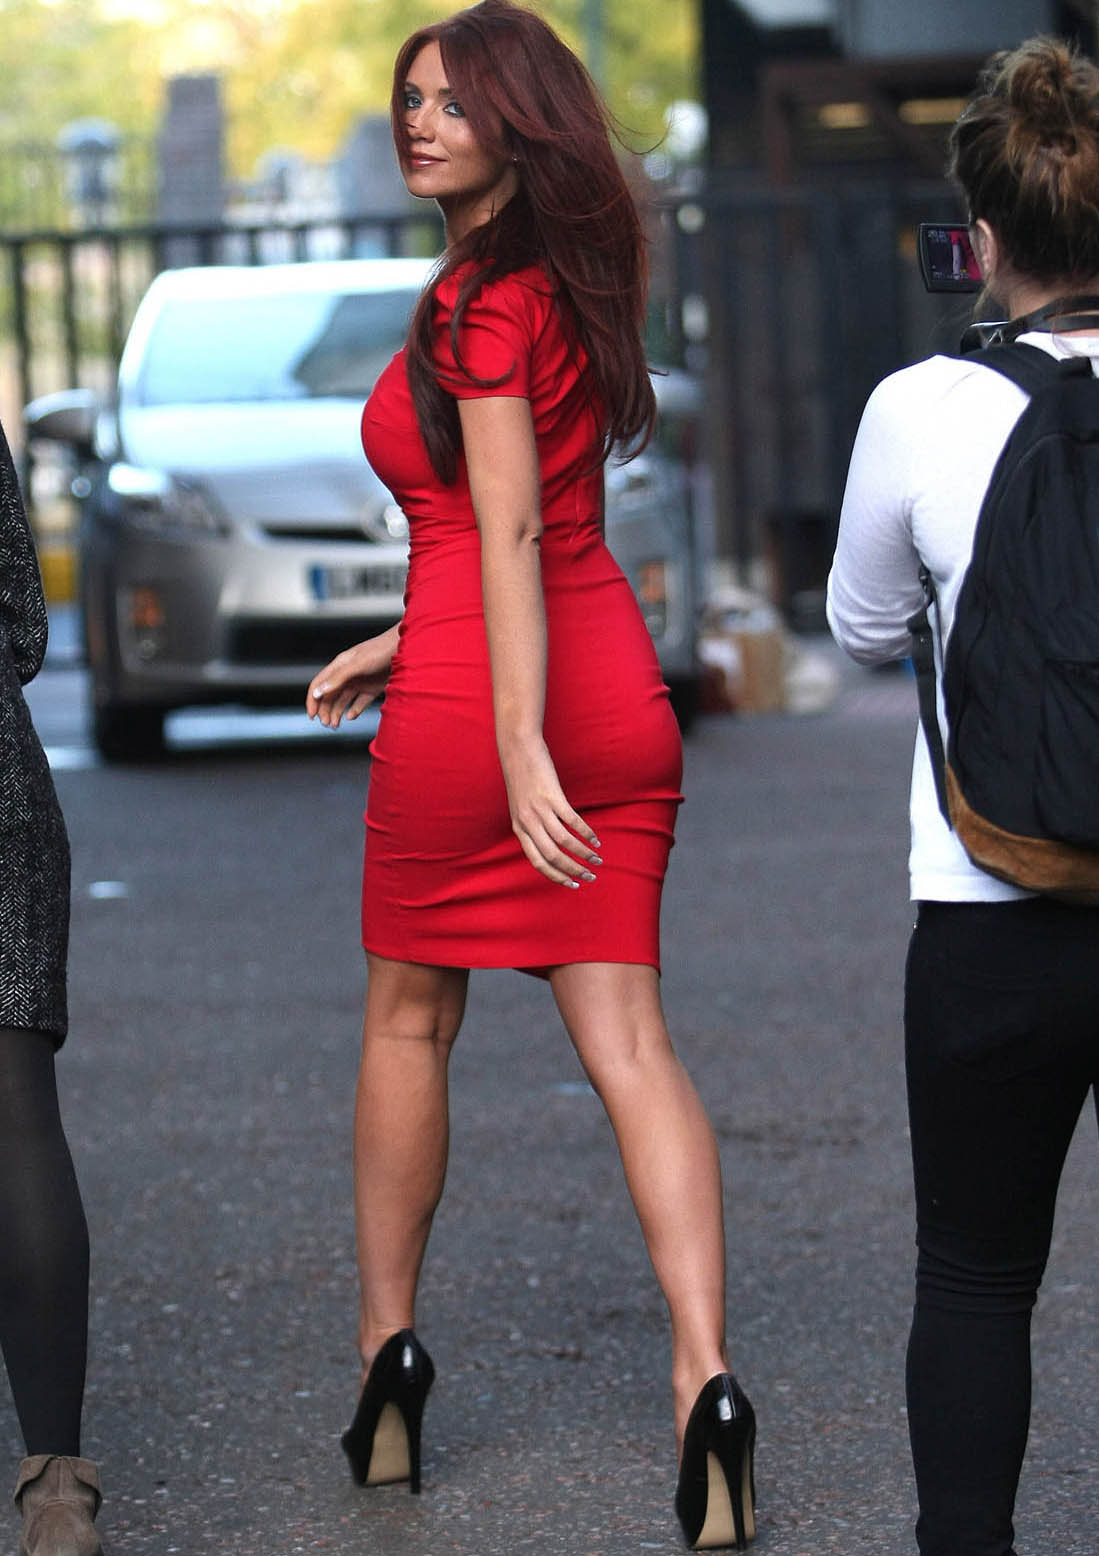 Amy Childs Has Great Curves and Sexy Legs in a Tight Dress and High